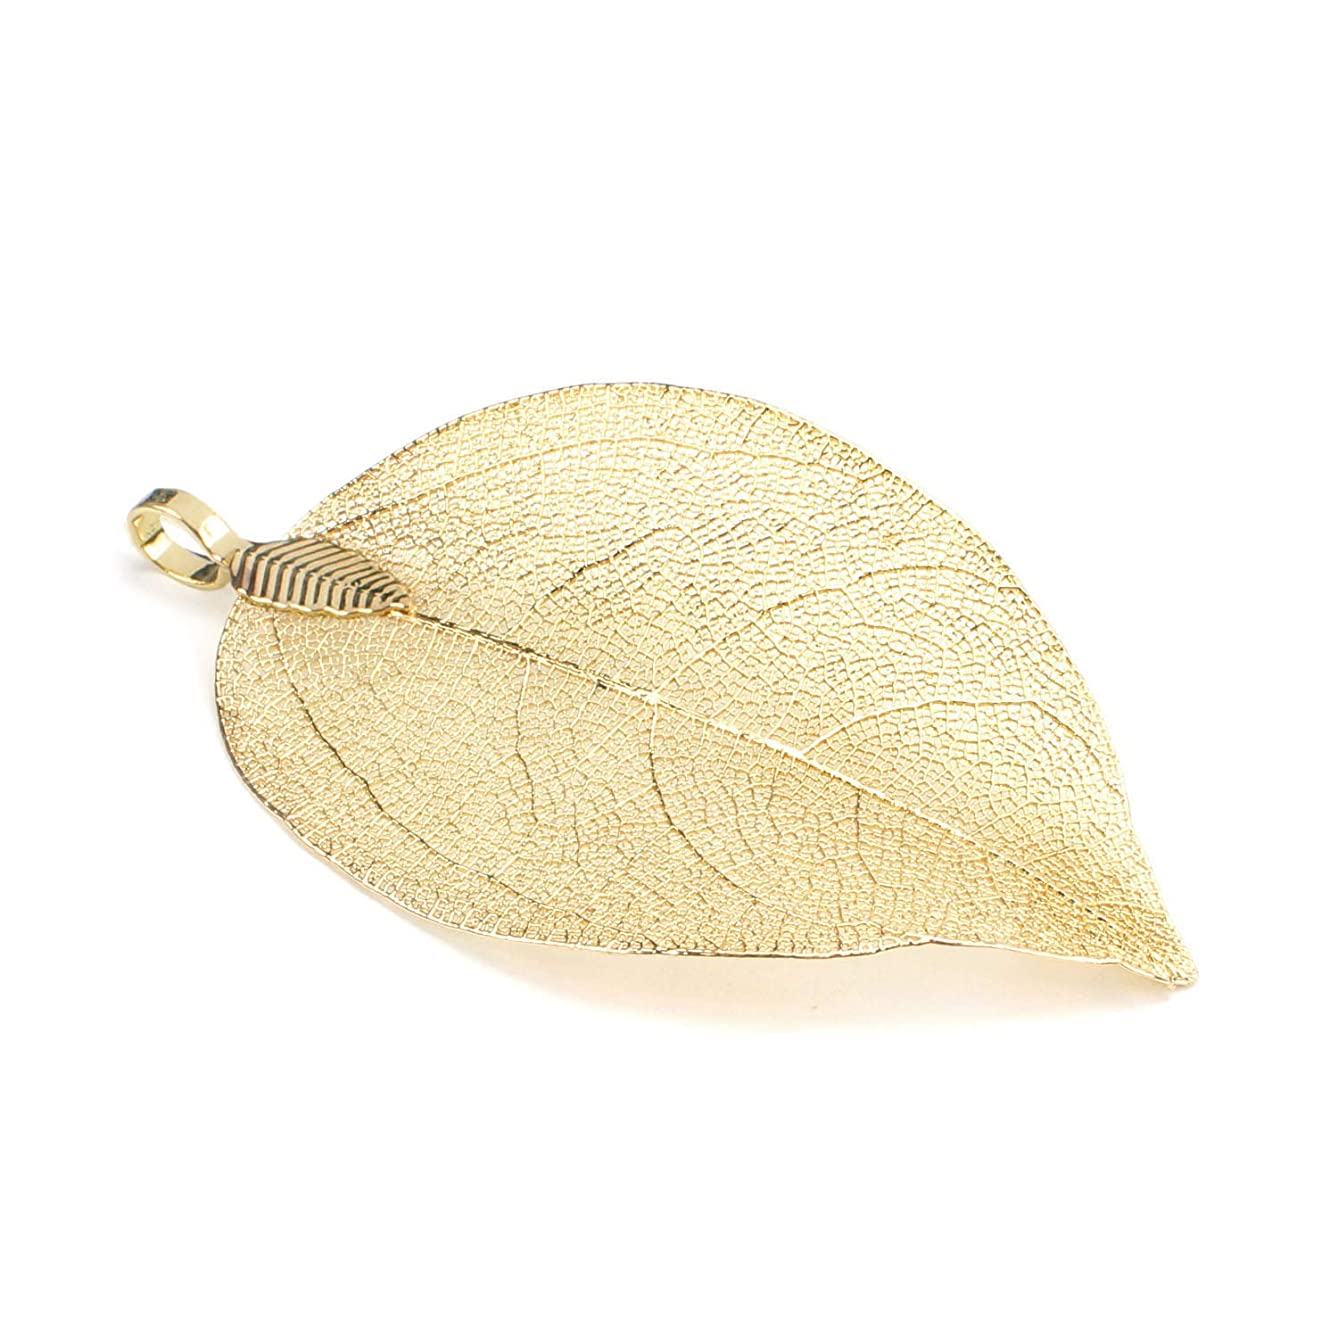 Wholesale 6PCS 14K Gold Plated Natural Real Leaf Pendants Bulk Cute Size Charms for Earring Jewelry Making